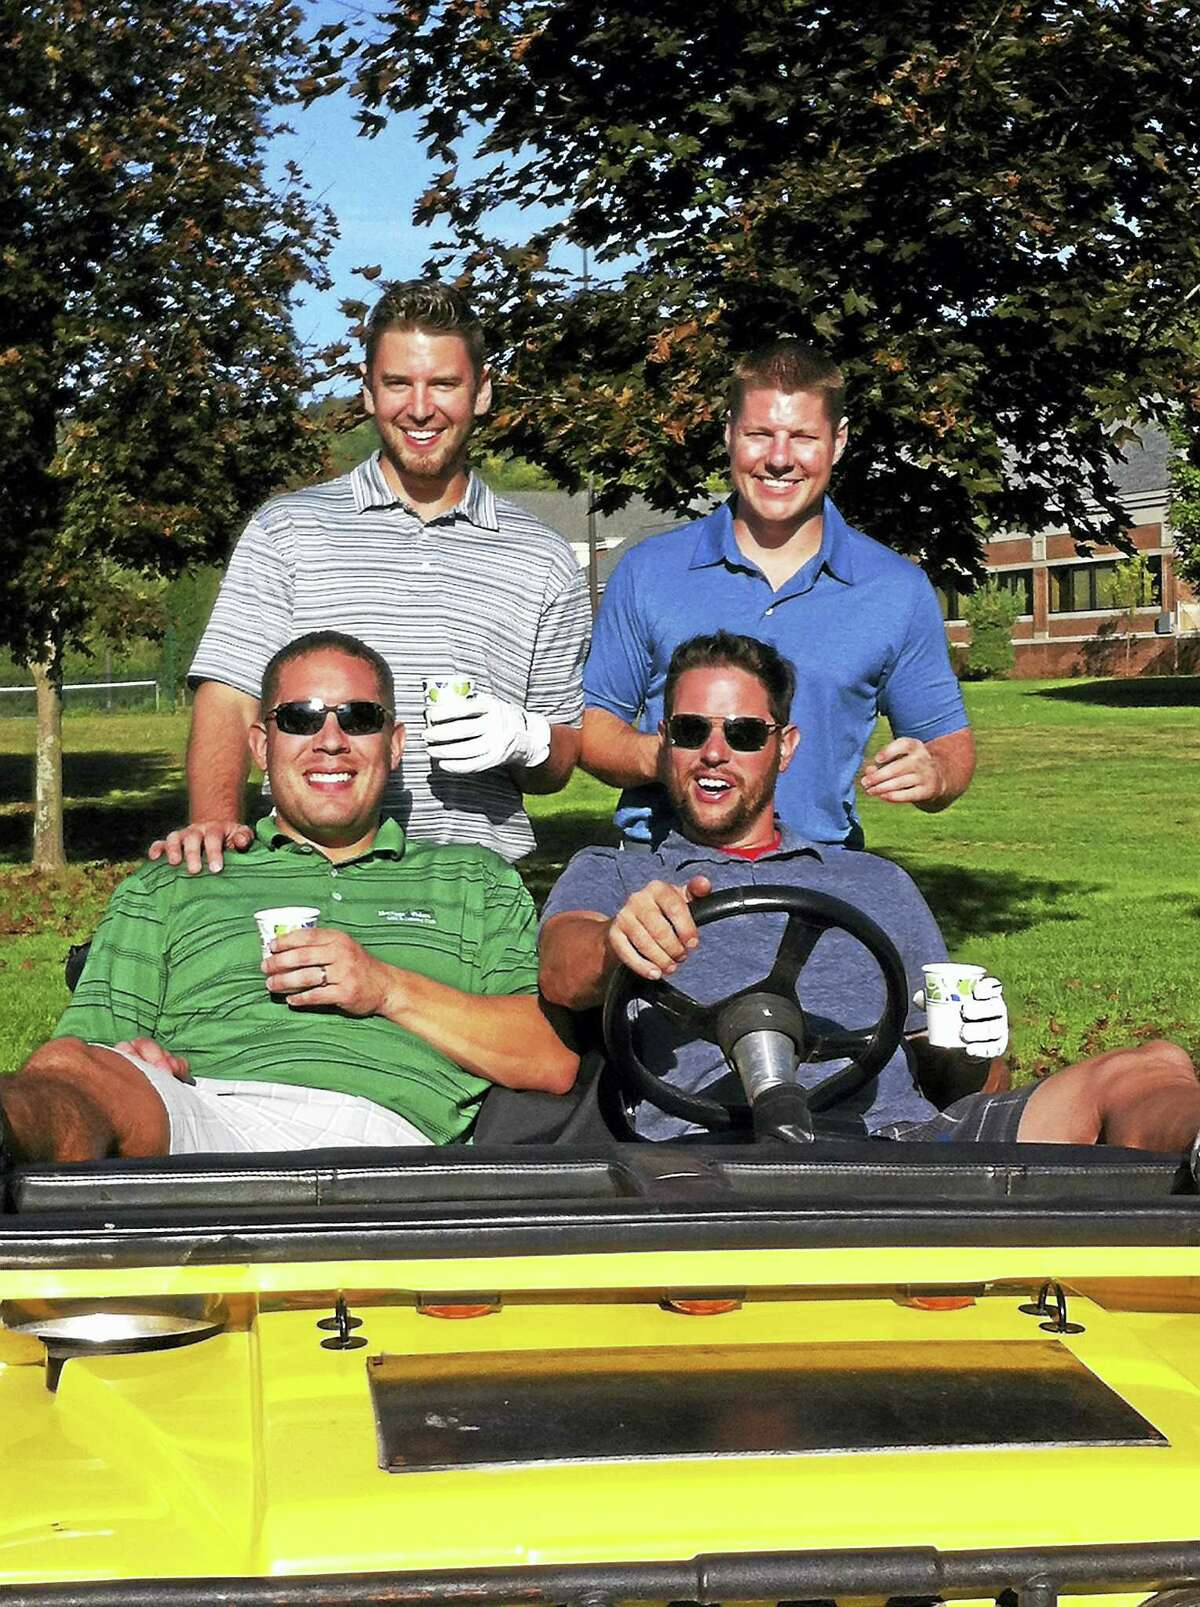 The Annual WIDE OPEN GOLF CLASSIC will hold its 35th Golf Tournament on Friday, October 7th at Blue Fox Run Golf Club in Avon. Dr. Matthew Keefe of Canton Valley Dental along with David Regan of Burlington, Fran Amara of Farmington and Ryan Mains of West Hartford will once again organize the tournament. The Wide Open over the years has raised funds for the local High Schools' (Canton, Lewis S. Mills and Northwestern Regional 7) substance abuse programs, Smile Train and has also supported research for the Connecticut Children's Medical Center Oncology Department. With the monies raised in 2015 donations were made to help fund the substance free graduation parties for Canton and Northwestern Regional 7 High Schools. An additional donation was made by the Wide Open Committee to the charity named Smile Train. Smile Train provides free cleft repair surgeries to children all around the world born with cleft palates and who cannot afford treatment. Children with unrepaired clefts have difficulty eating, breathing and speaking. Let's make the 35th Wide Open Golf Classic the best one yet! If you would like to participate in the tournament, please contact Jill at Canton Valley Dental at 860-693-0887. If you cannot play in the tournament you may still sponsor a hole or donate a raffle prize. Please let us know if you can participate in any way.